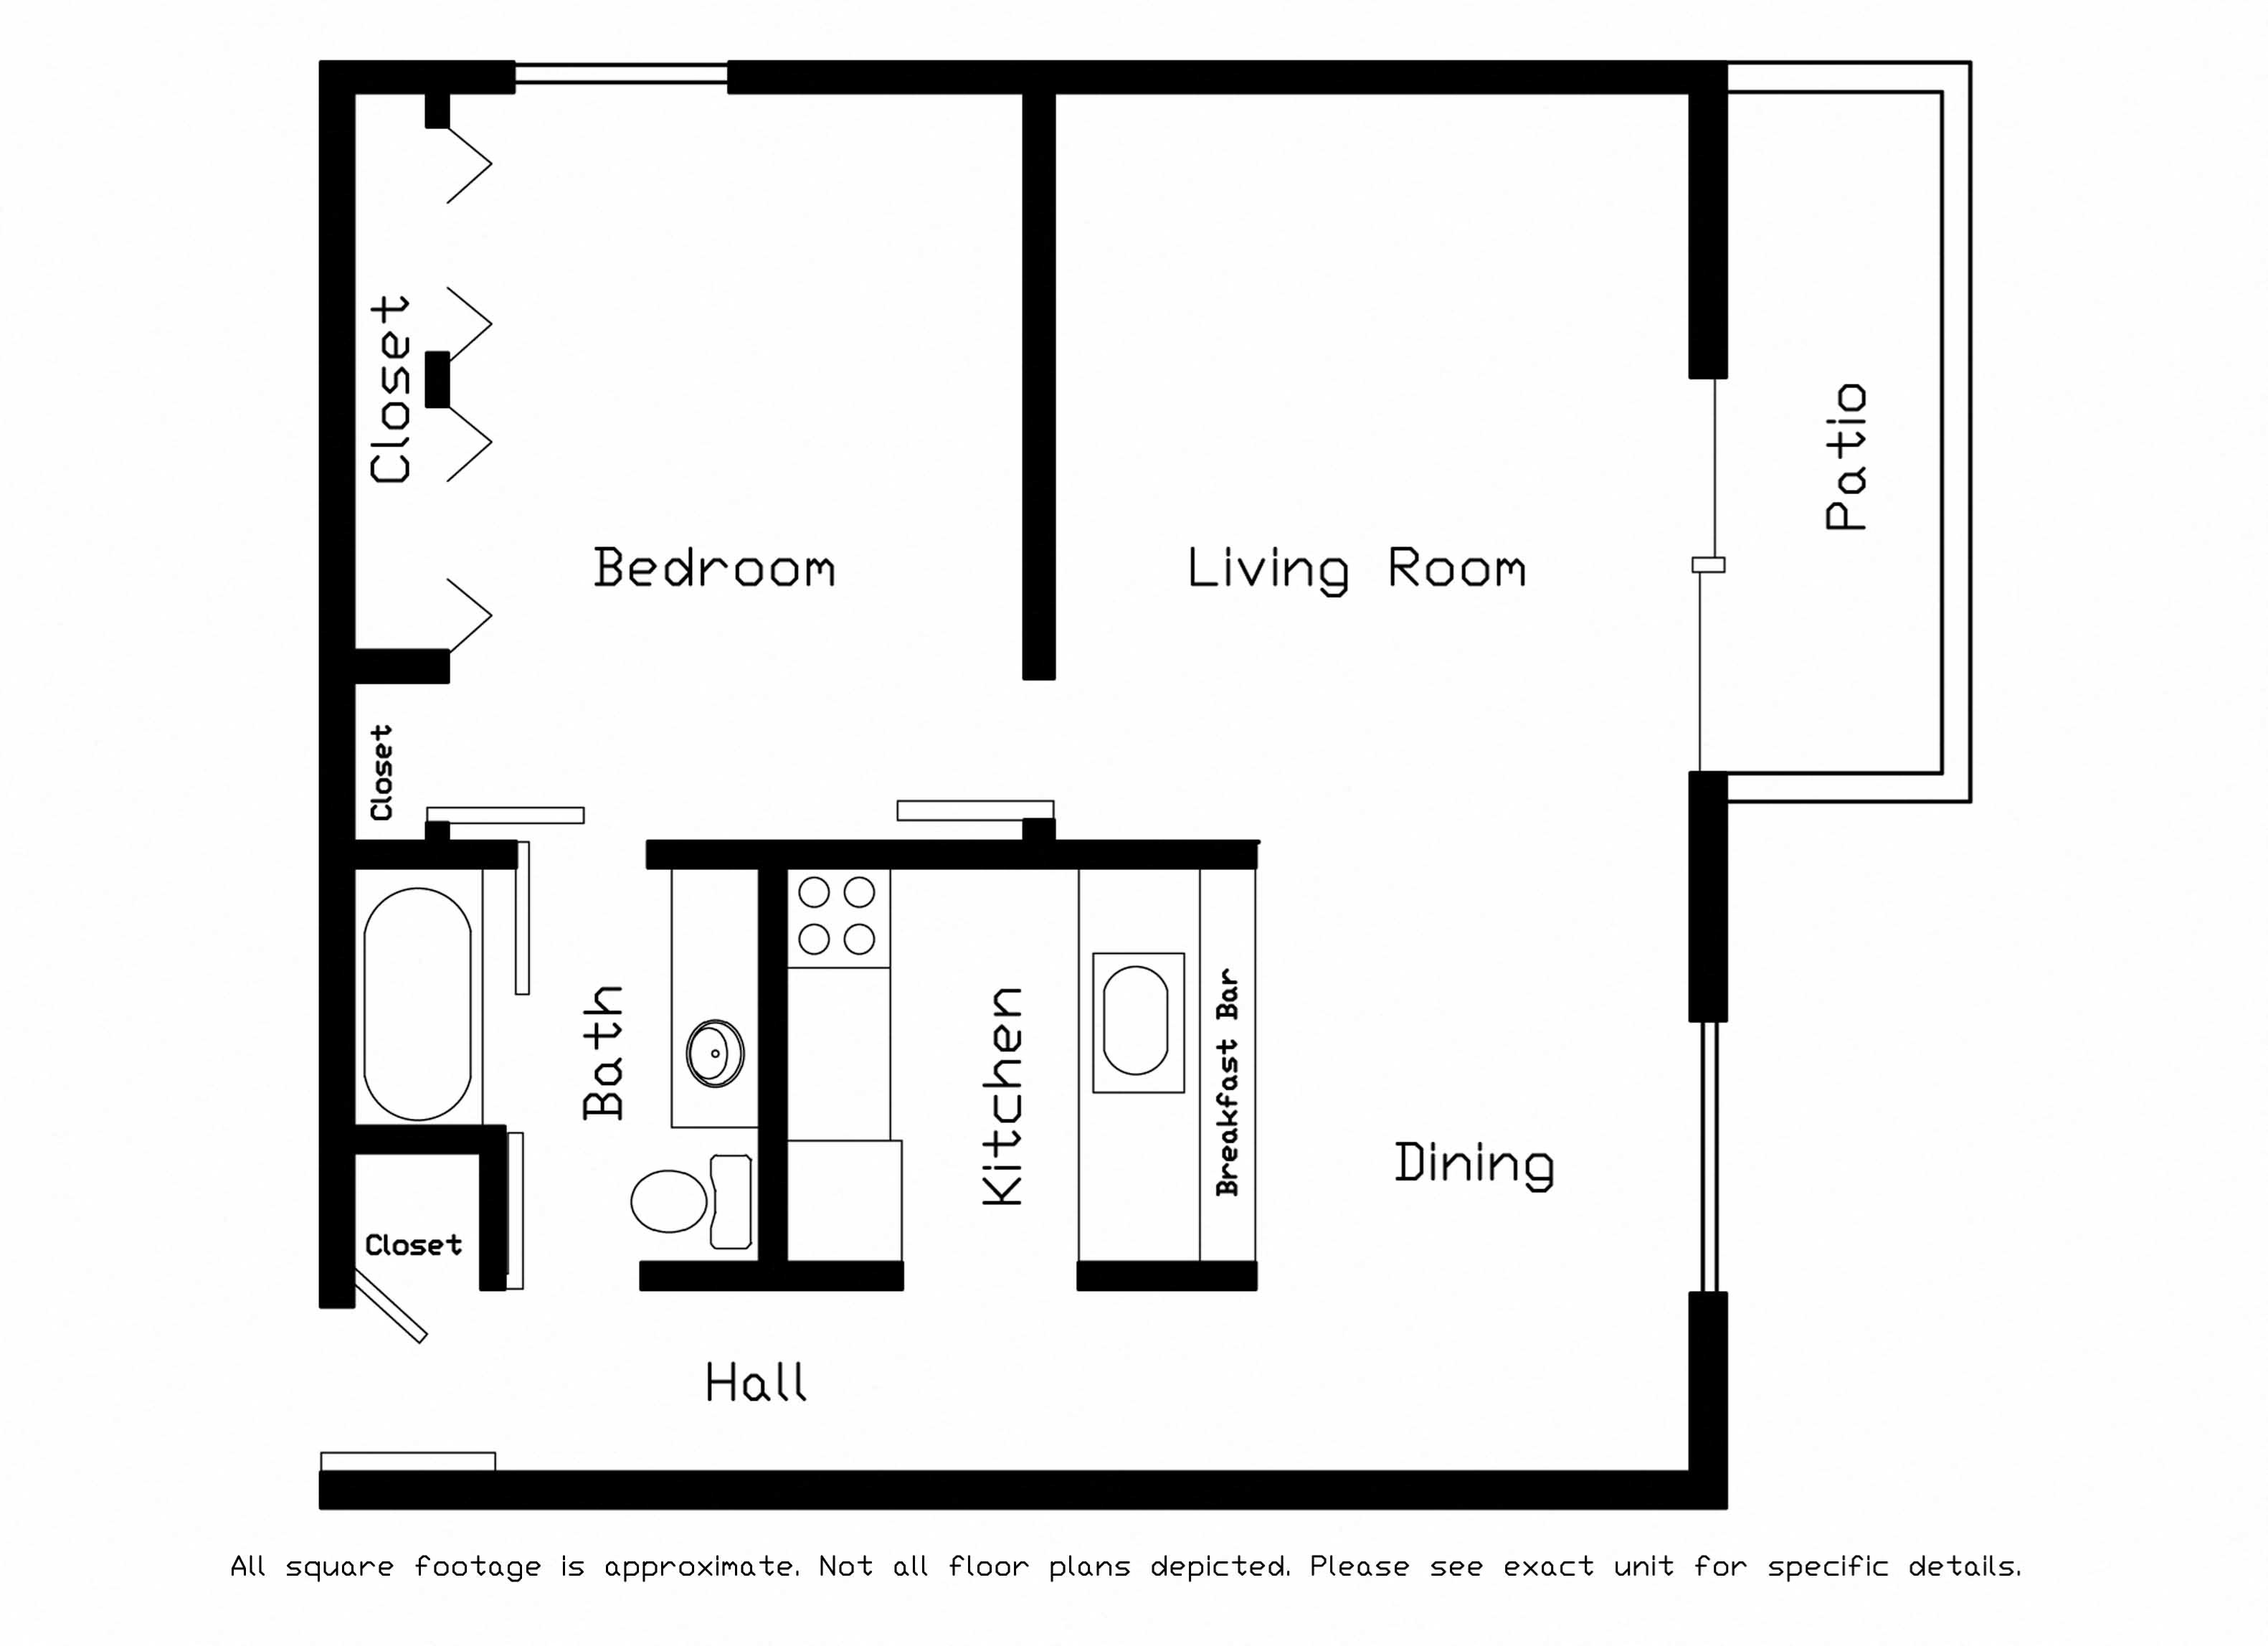 One Bedroom Floor Plan 3